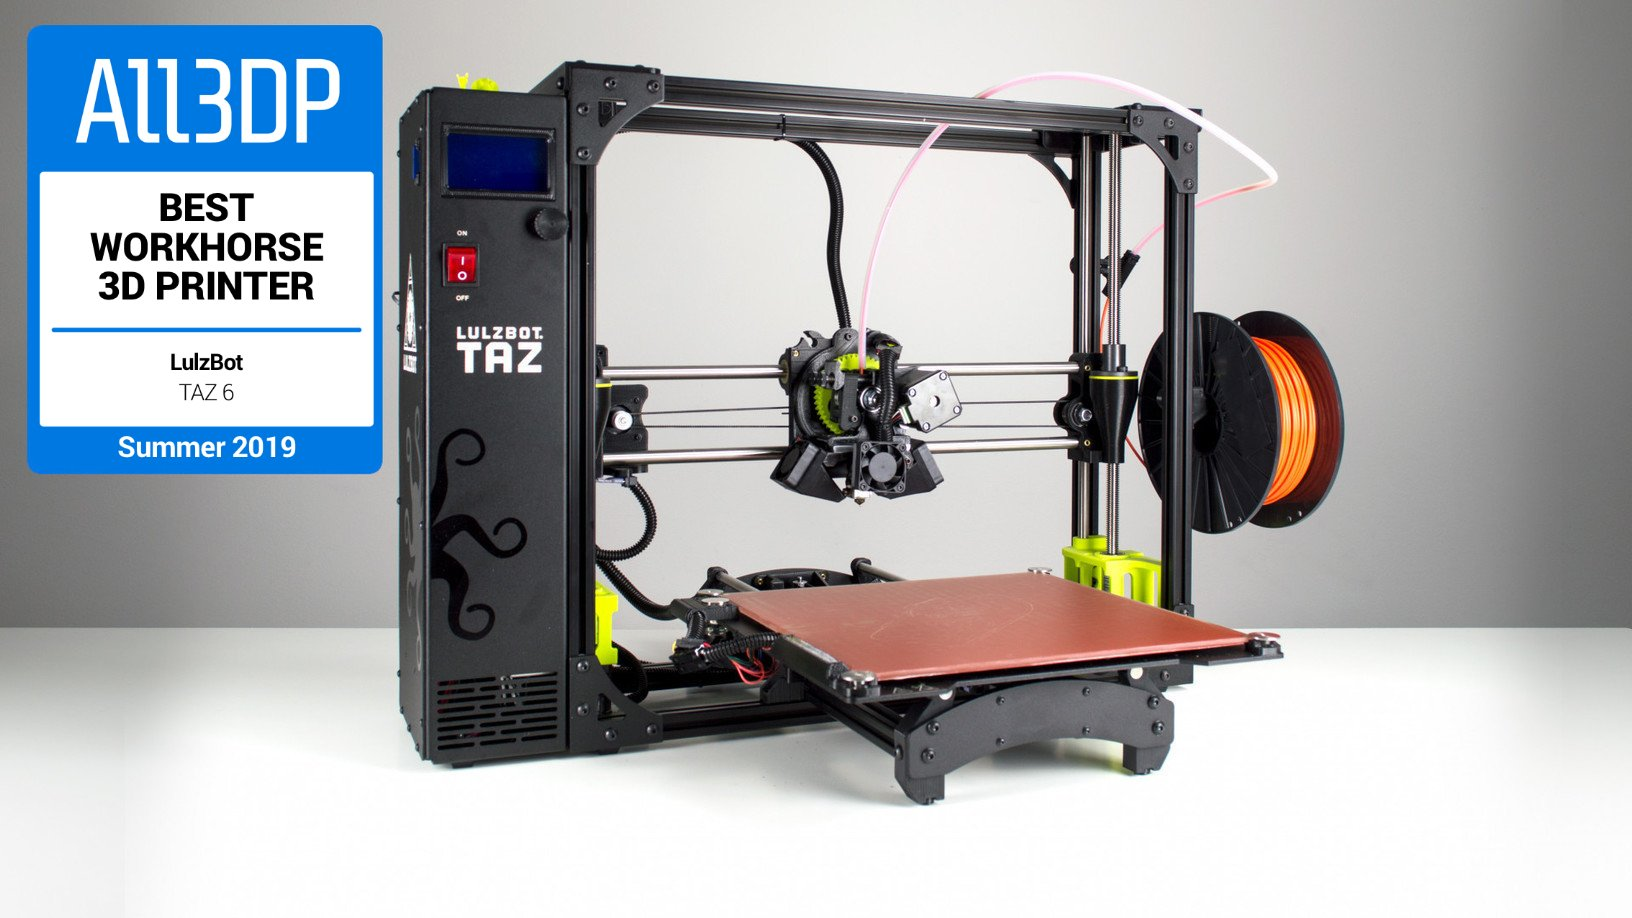 Lulzbot TAZ 6 Review: Great Workhorse 3D Printer | All3DP